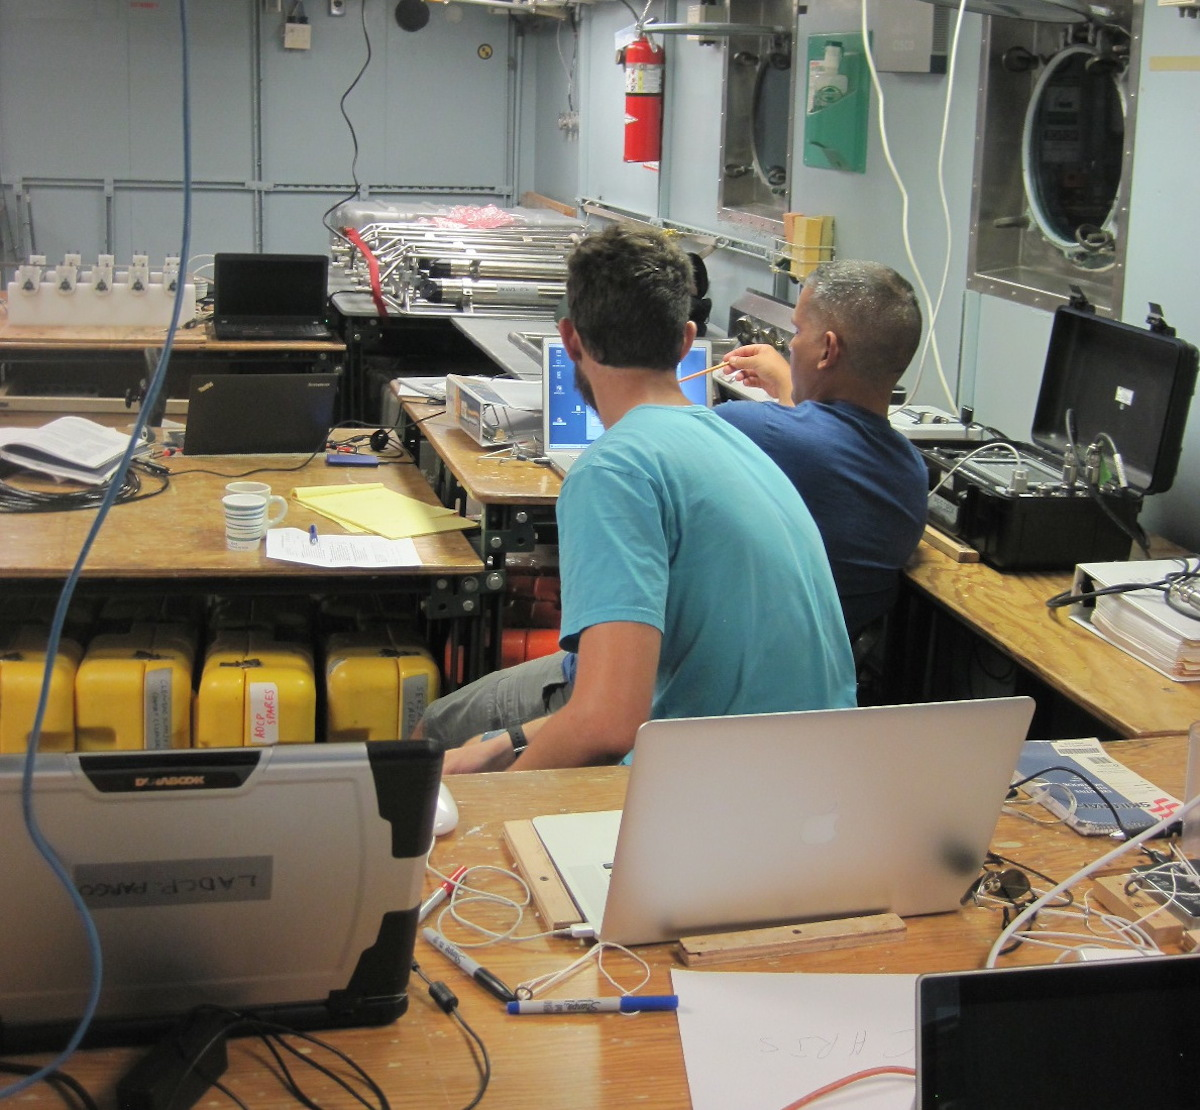 An AOML scientist (right) explains to one of the university students participating in the cruise how data is acoustically downloaded from one of the NOAA subsurface moored instruments. Image credit: NOAA